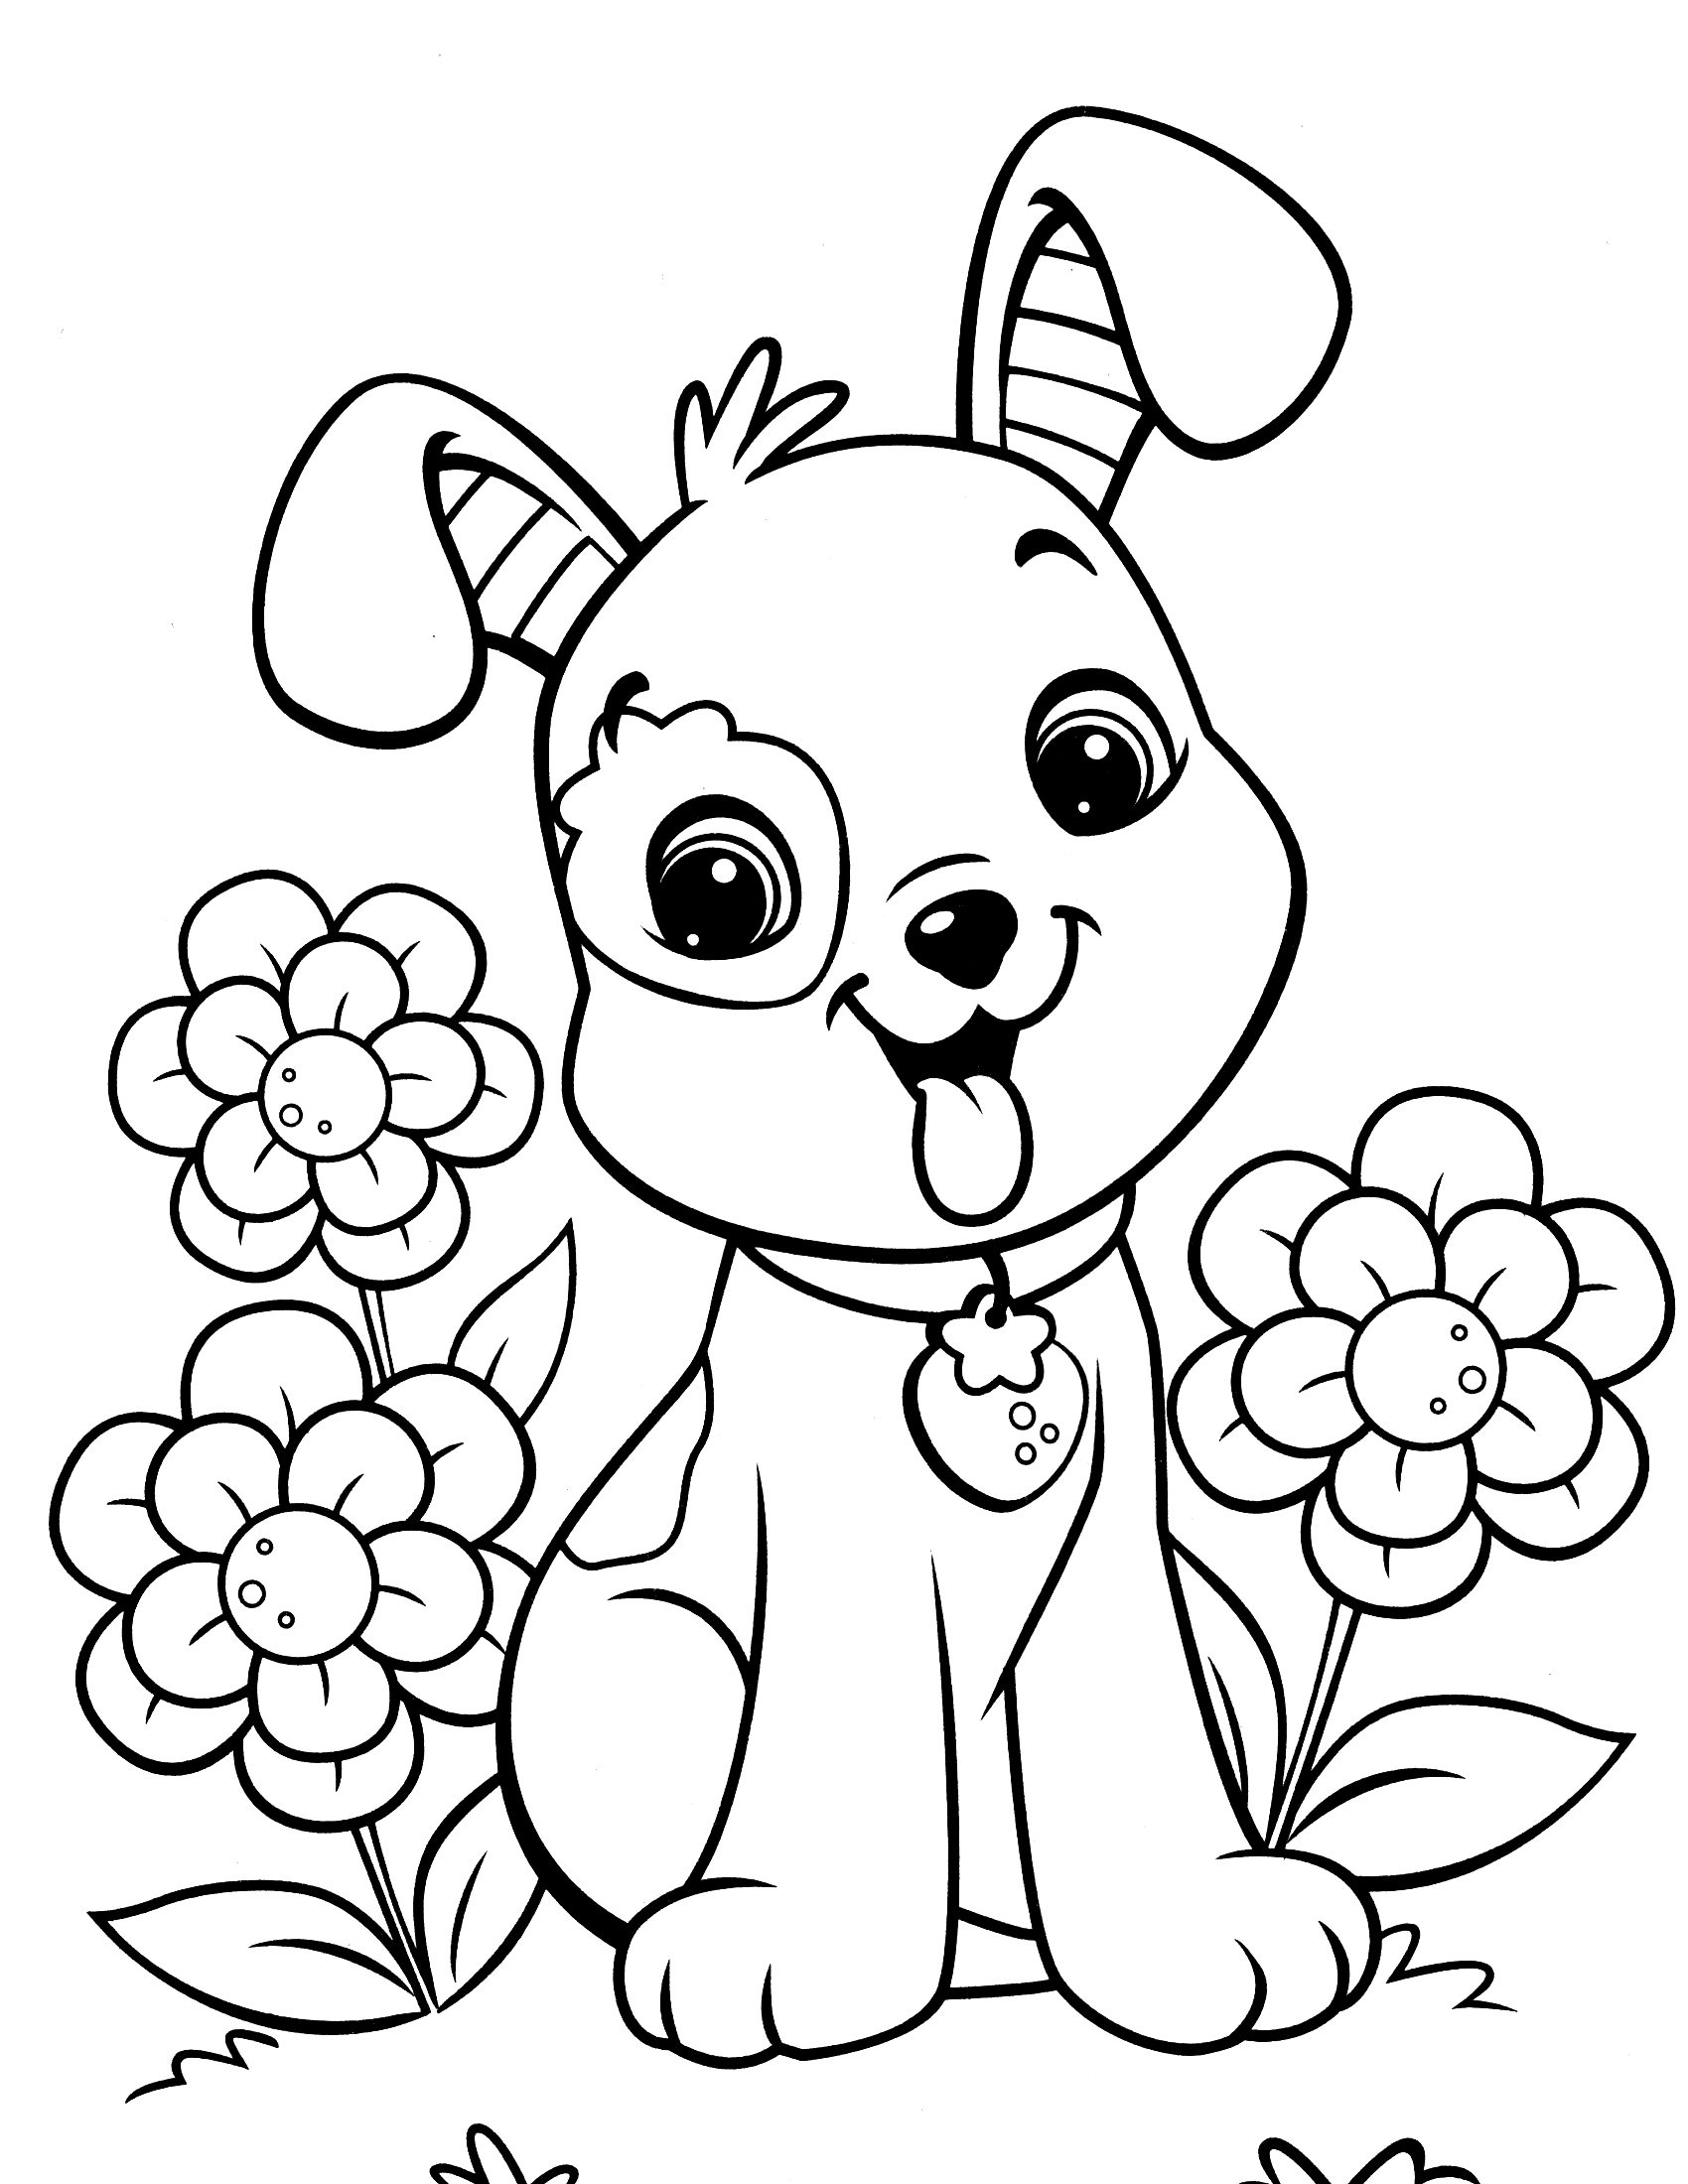 dogs colouring puppy dog pals coloring pages to download and print for free colouring dogs 1 1